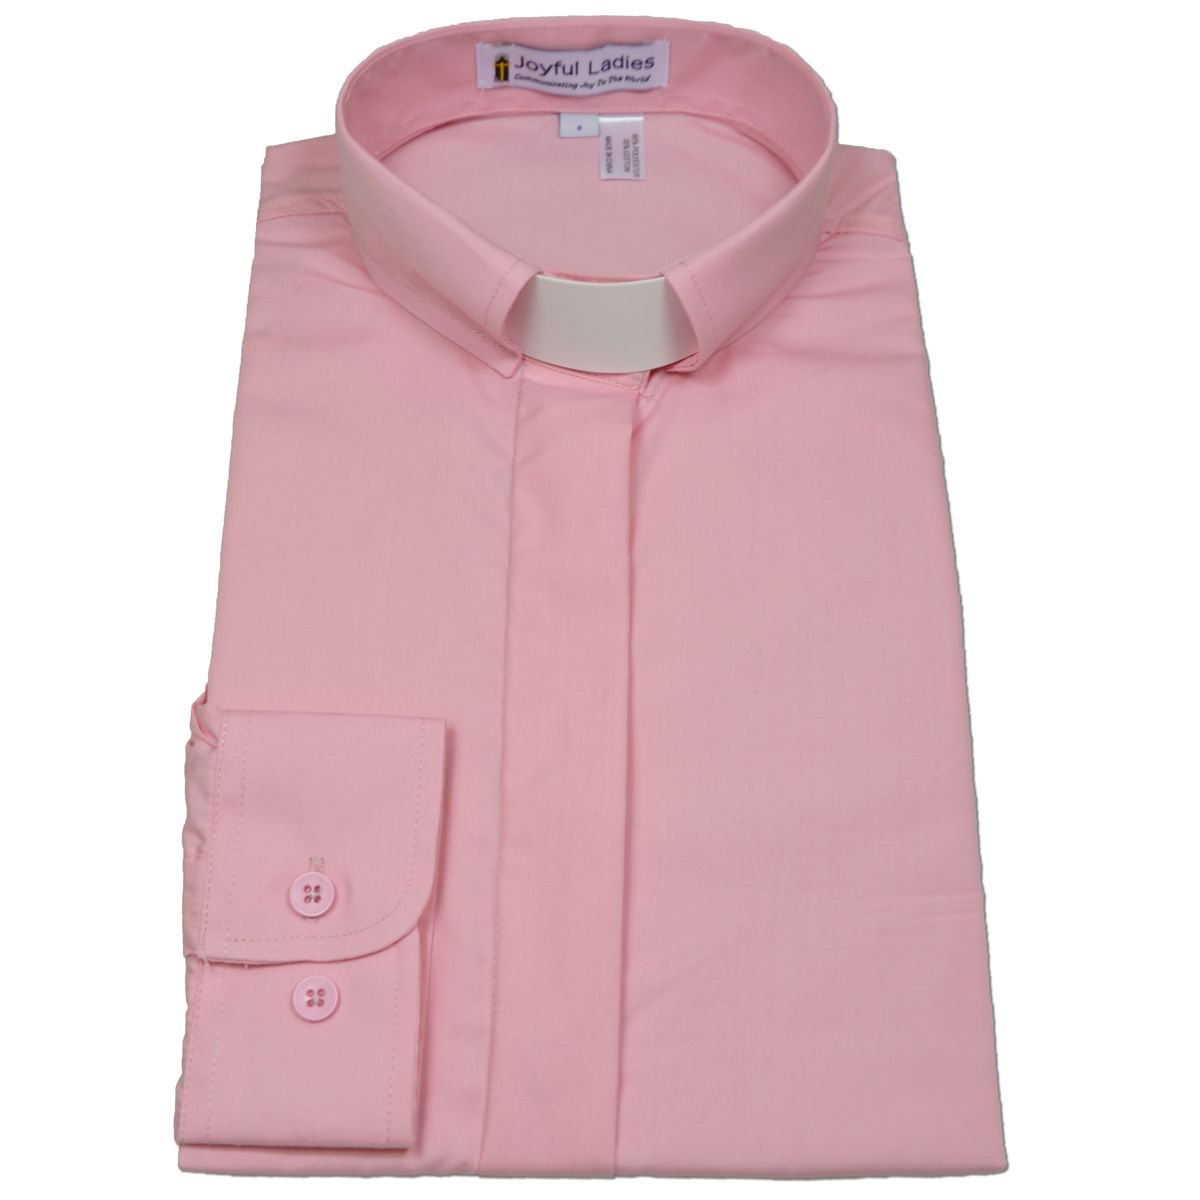 529. Women's Long-Sleeve Tab-Collar Clergy Shirt - Pink